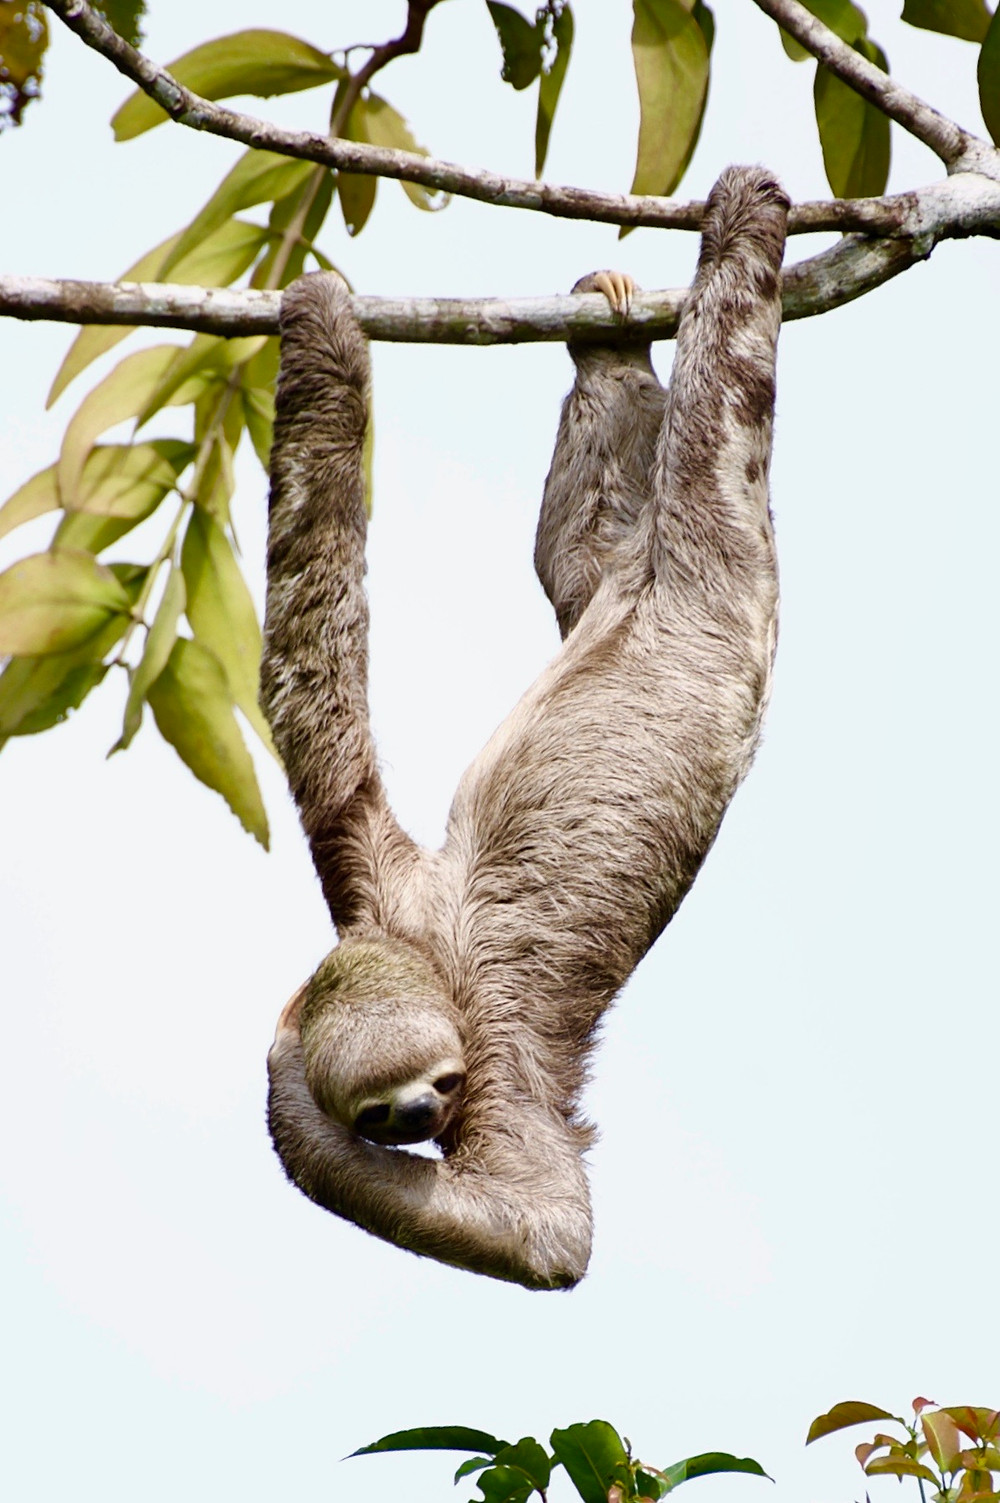 A three-toed sloth using three limbs to hang from a tree branch in the Amazon Rainforest while it scratches its head